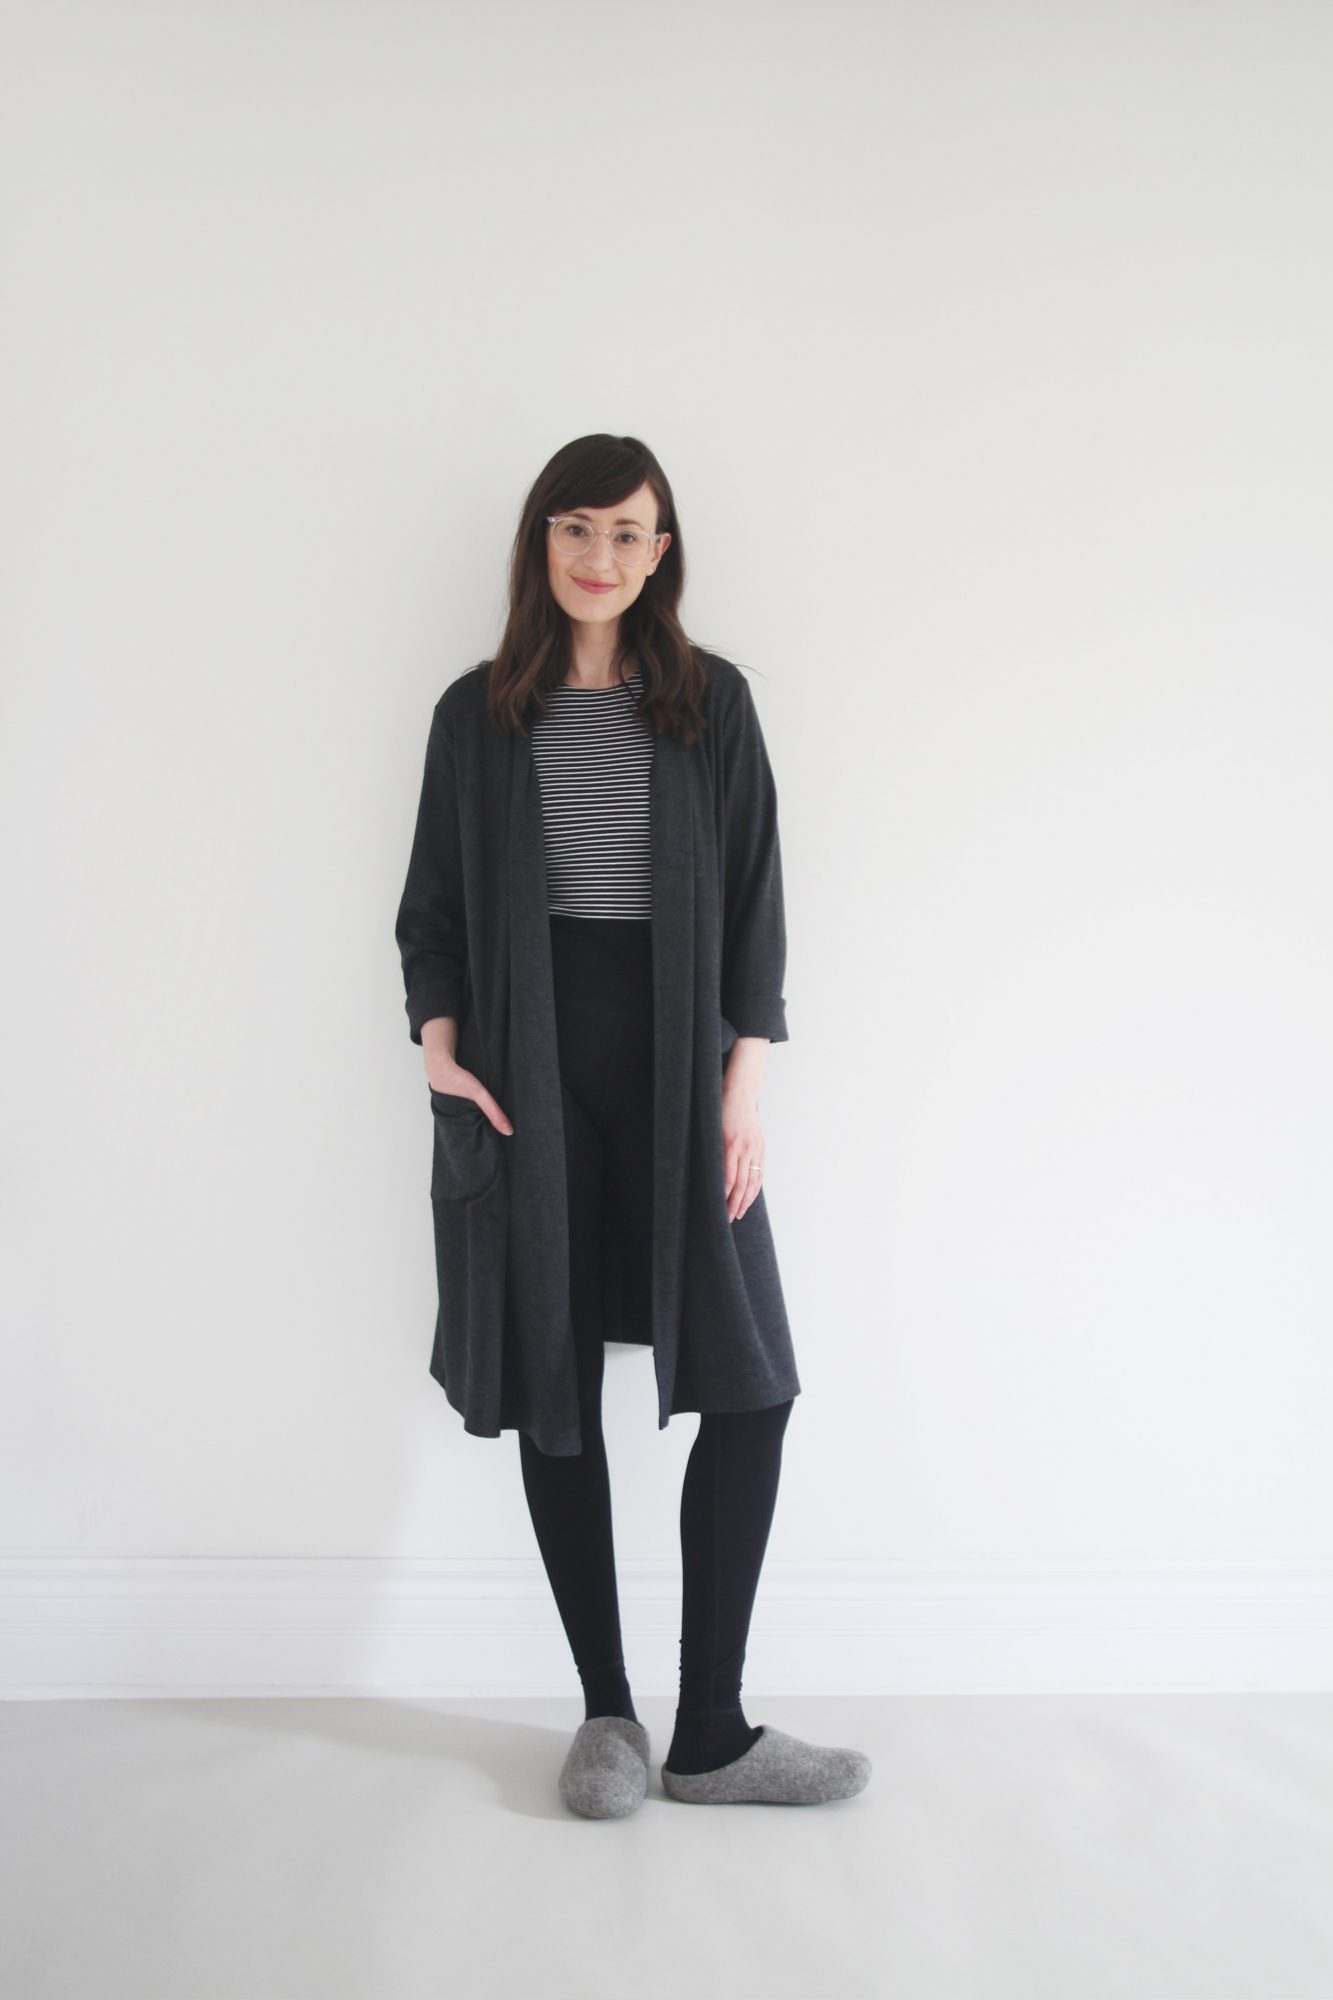 Style Bee - 3 Outfits for Working From Home